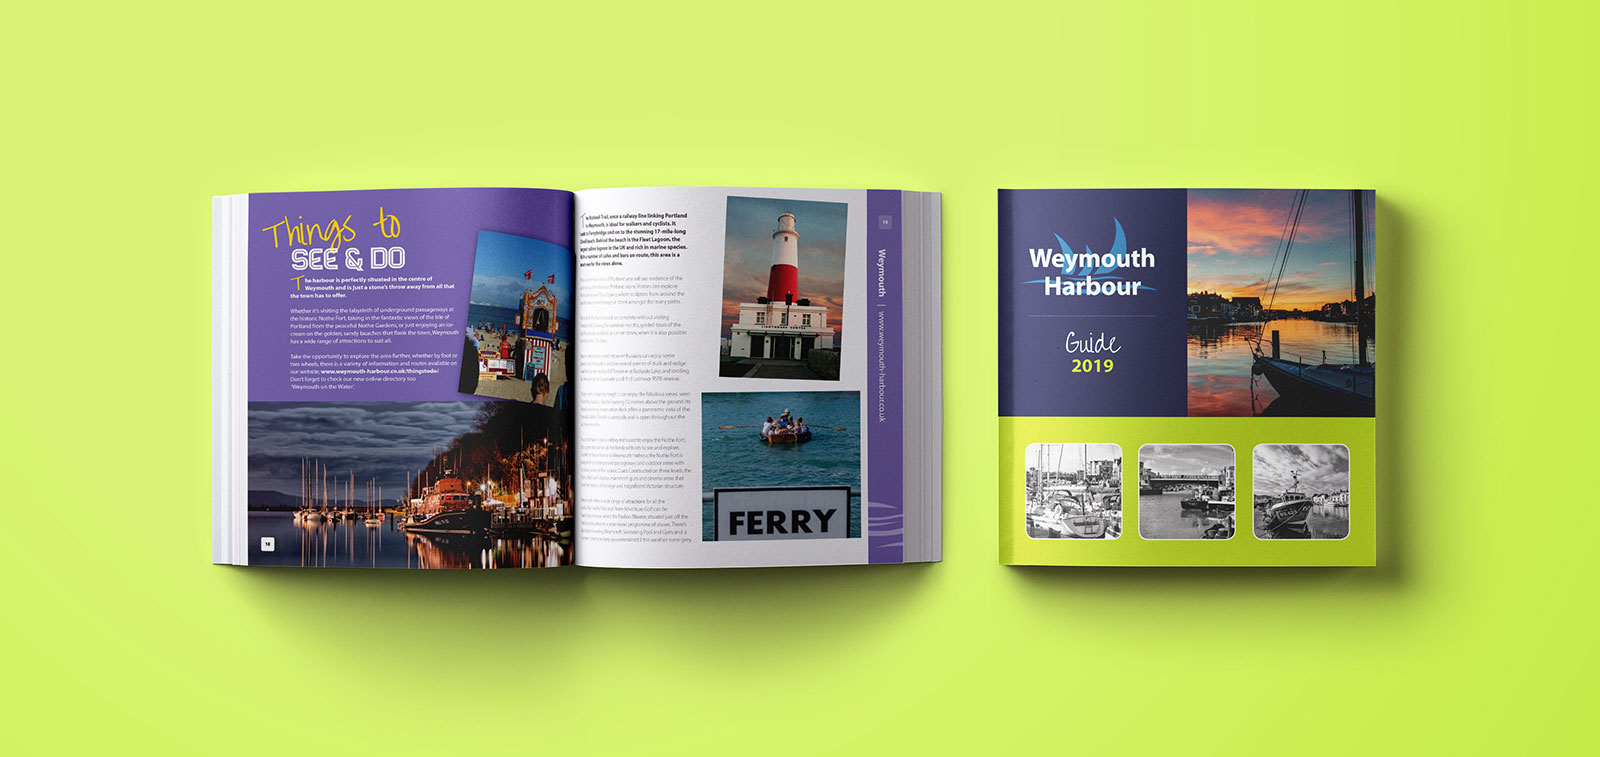 Weymouth Harbour Guide